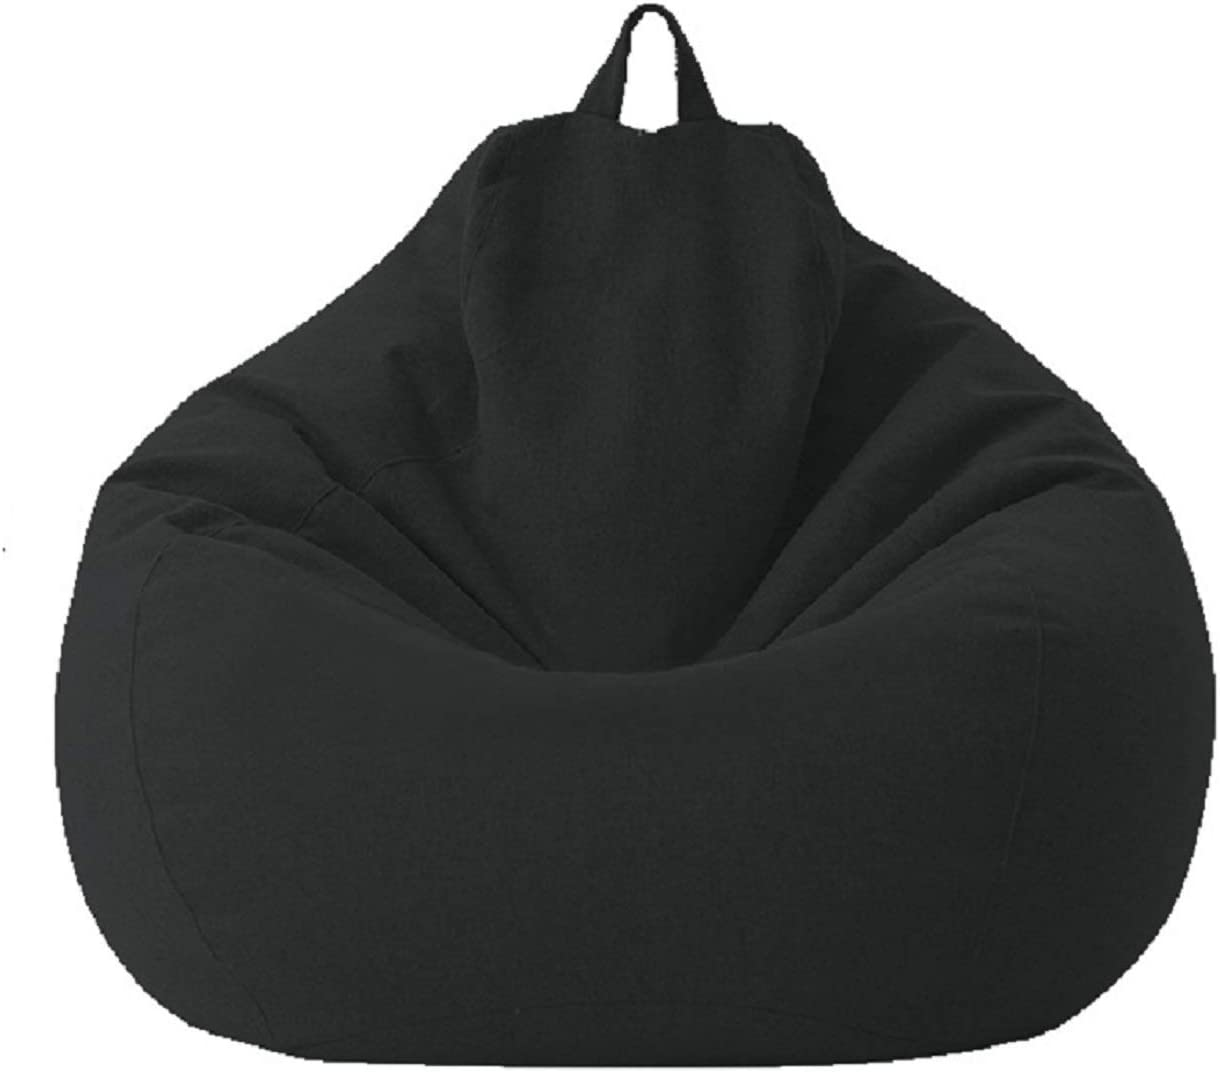 Mekiyo Bean Bag Sofa Chairs Cover, Classic Lazy Lounger Bean Bag Storage Chair for Adults and Kids for Home Garden Lounge Living Room Indoor Outdoor (33.4641.33 in, Black 01)